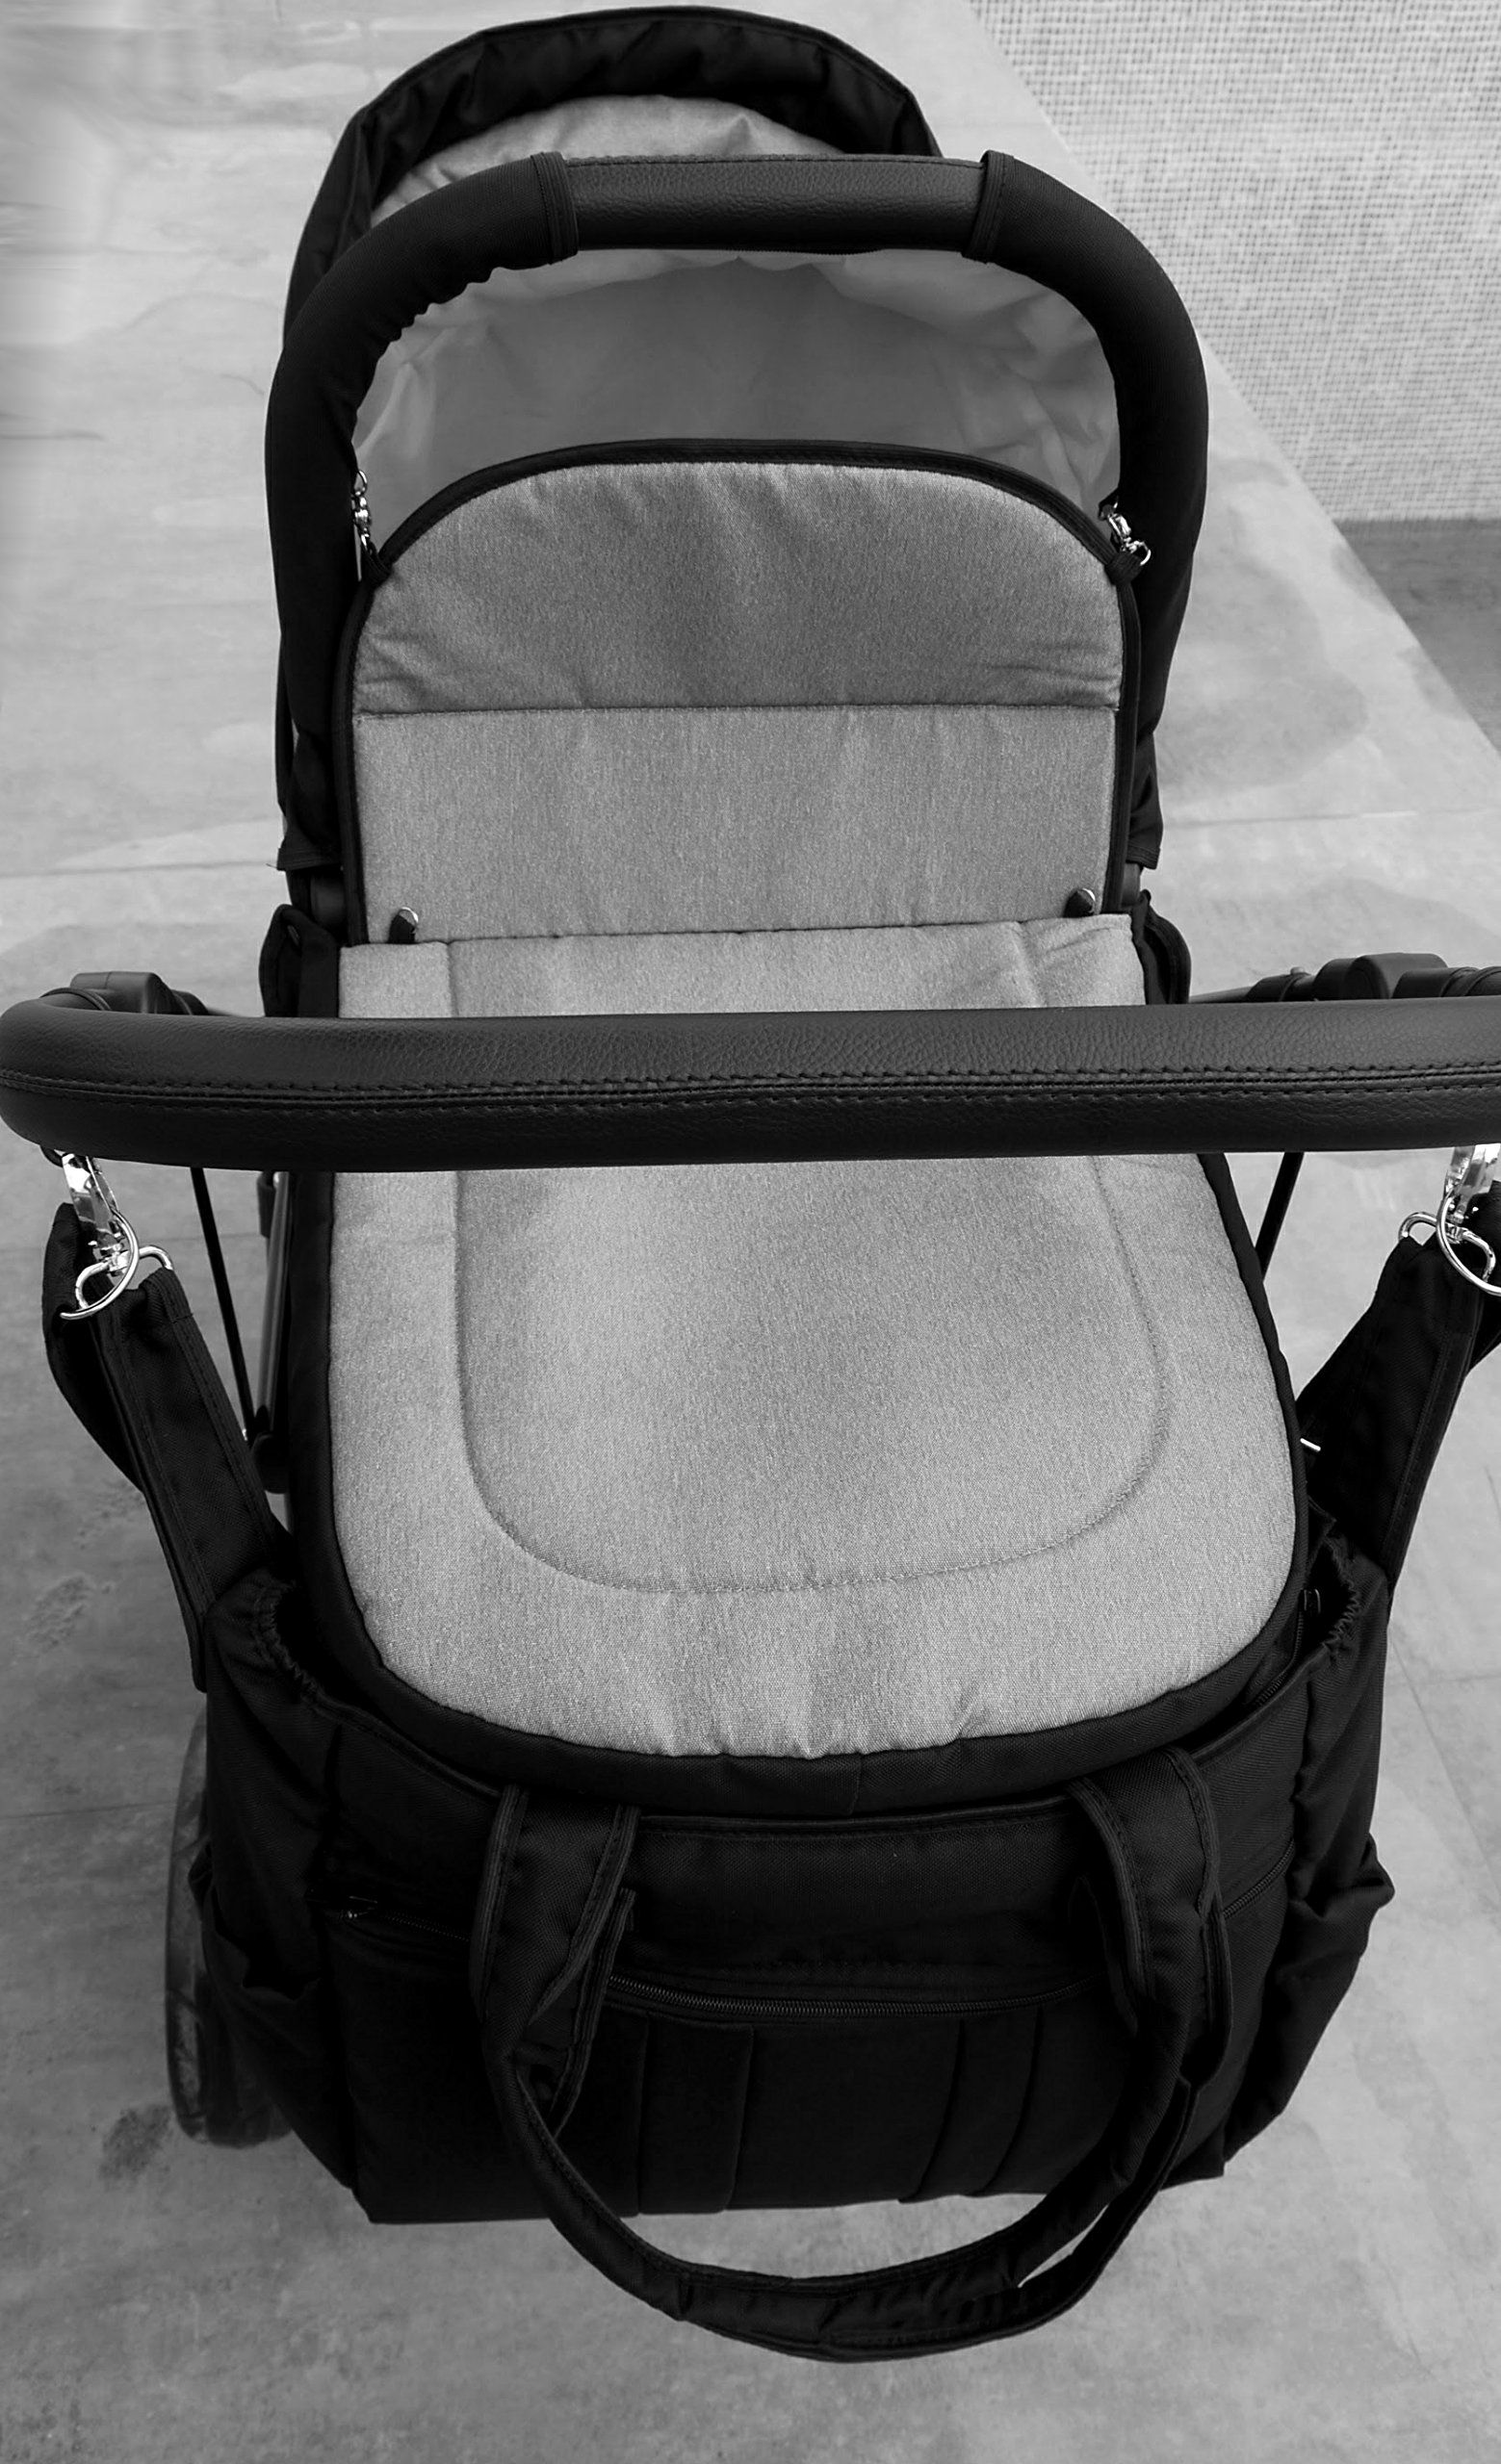 Double pram for twins. 2 carrycots + 2 buggies + 2 car seats. Grey. BBtwin Berber Carlo Directly from the factory, warranty and advice. Made un the EU according to the regulations EN1888 and ECE44/04. Colour grey. Includes 2 carrycots, 2 buggy seats, 2 car seats, bag, 2 footcovers, 2 rain covers, 2 mosquito nets, lower basket. Features: lightweight aluminium frame, easy bending, adjustable handlebar, central brake, lockable front swivel wheels, shock absorbers, each buggy can be instaled independently in both directions, carrycots with a mattress and a washable cover, backrest adjustable in various positions, safety bar and harness of 5 points 9